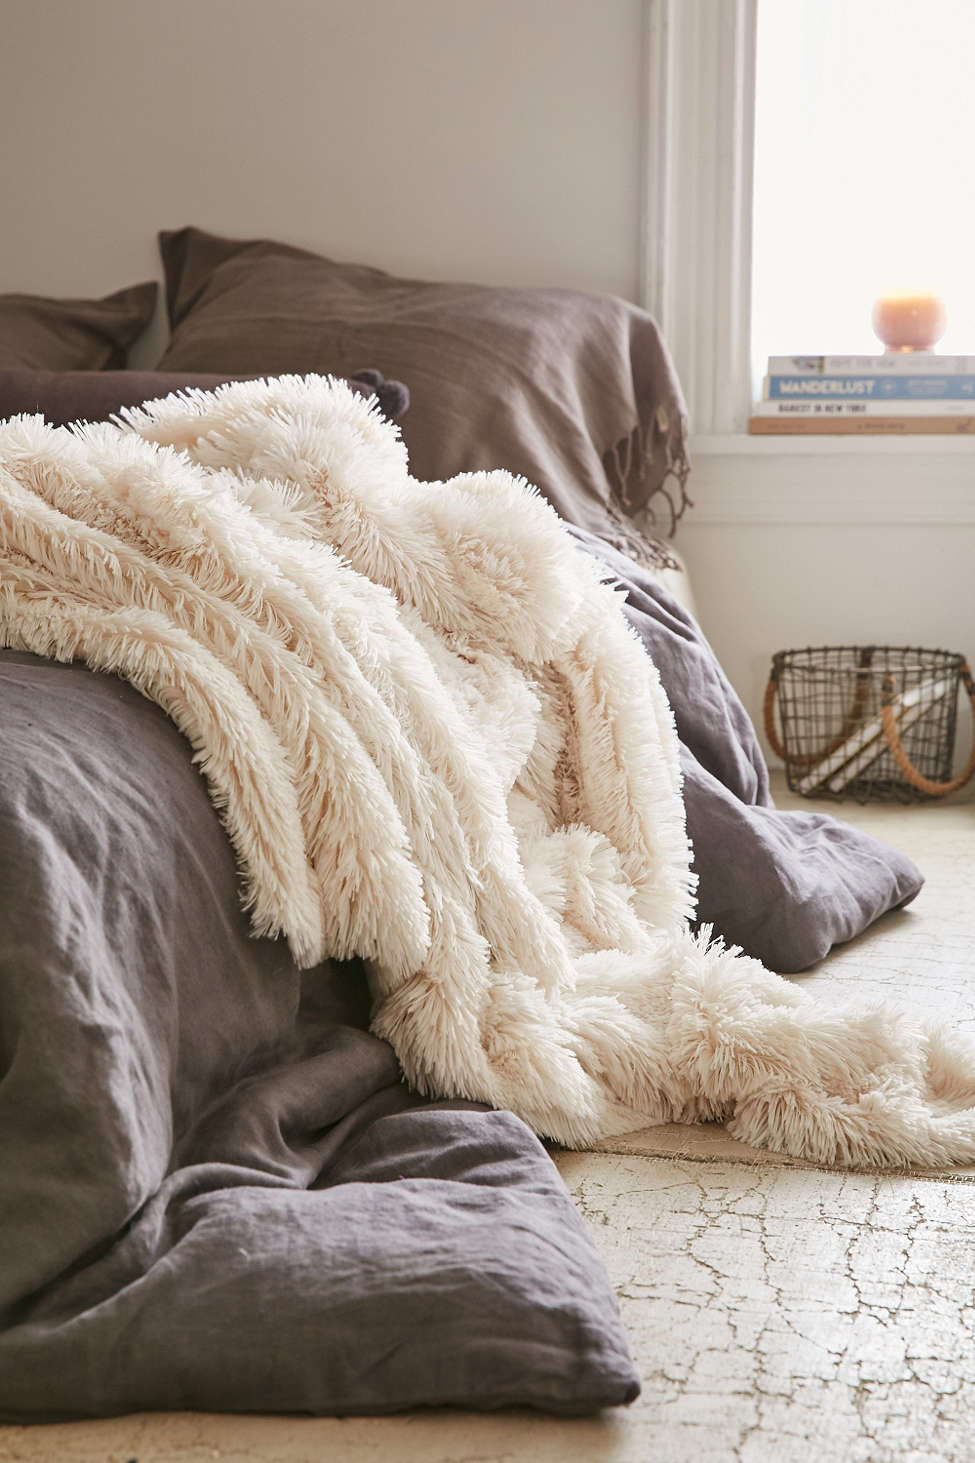 Faux fur blanket from Urban Outfitters